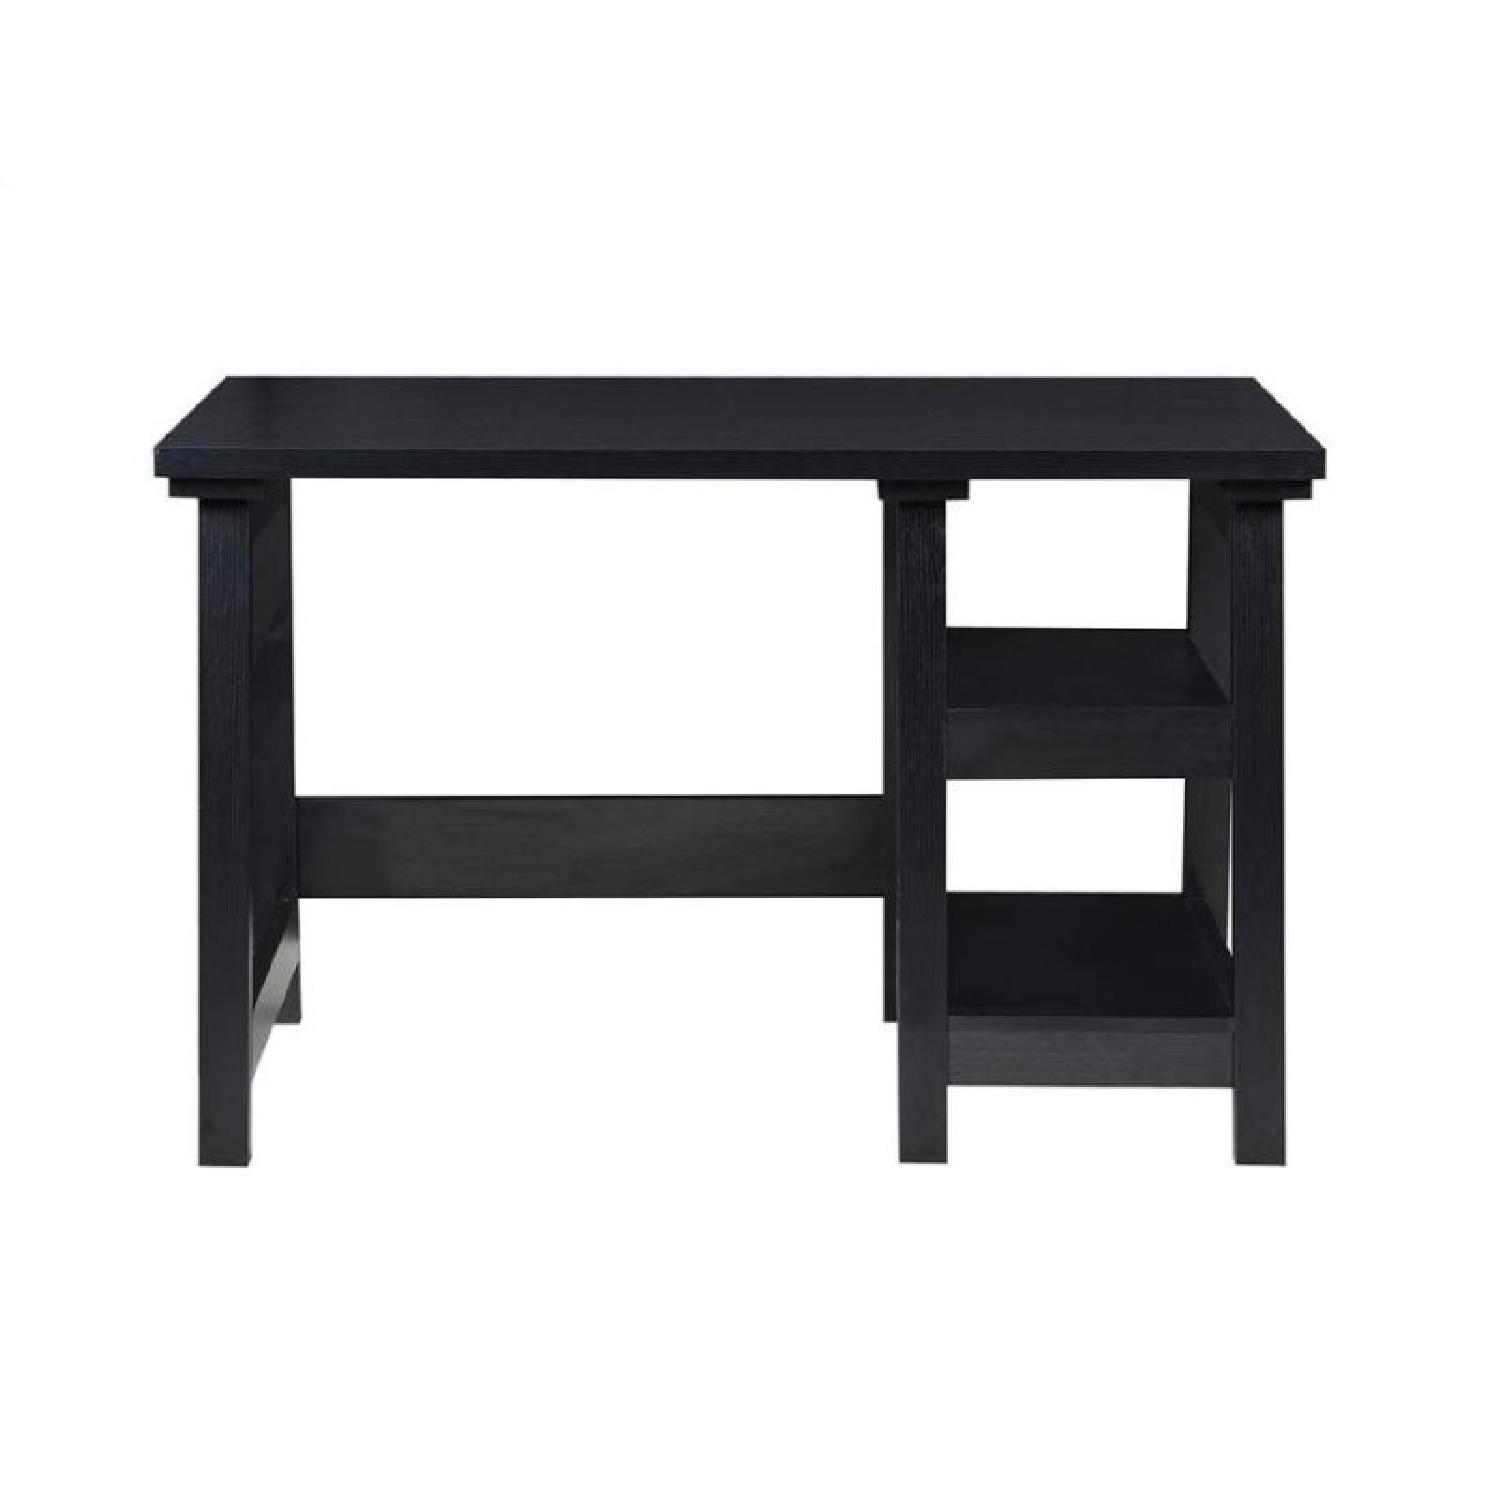 Simple Writing Desk W Tier Shelves In Black Finish Aptdeco